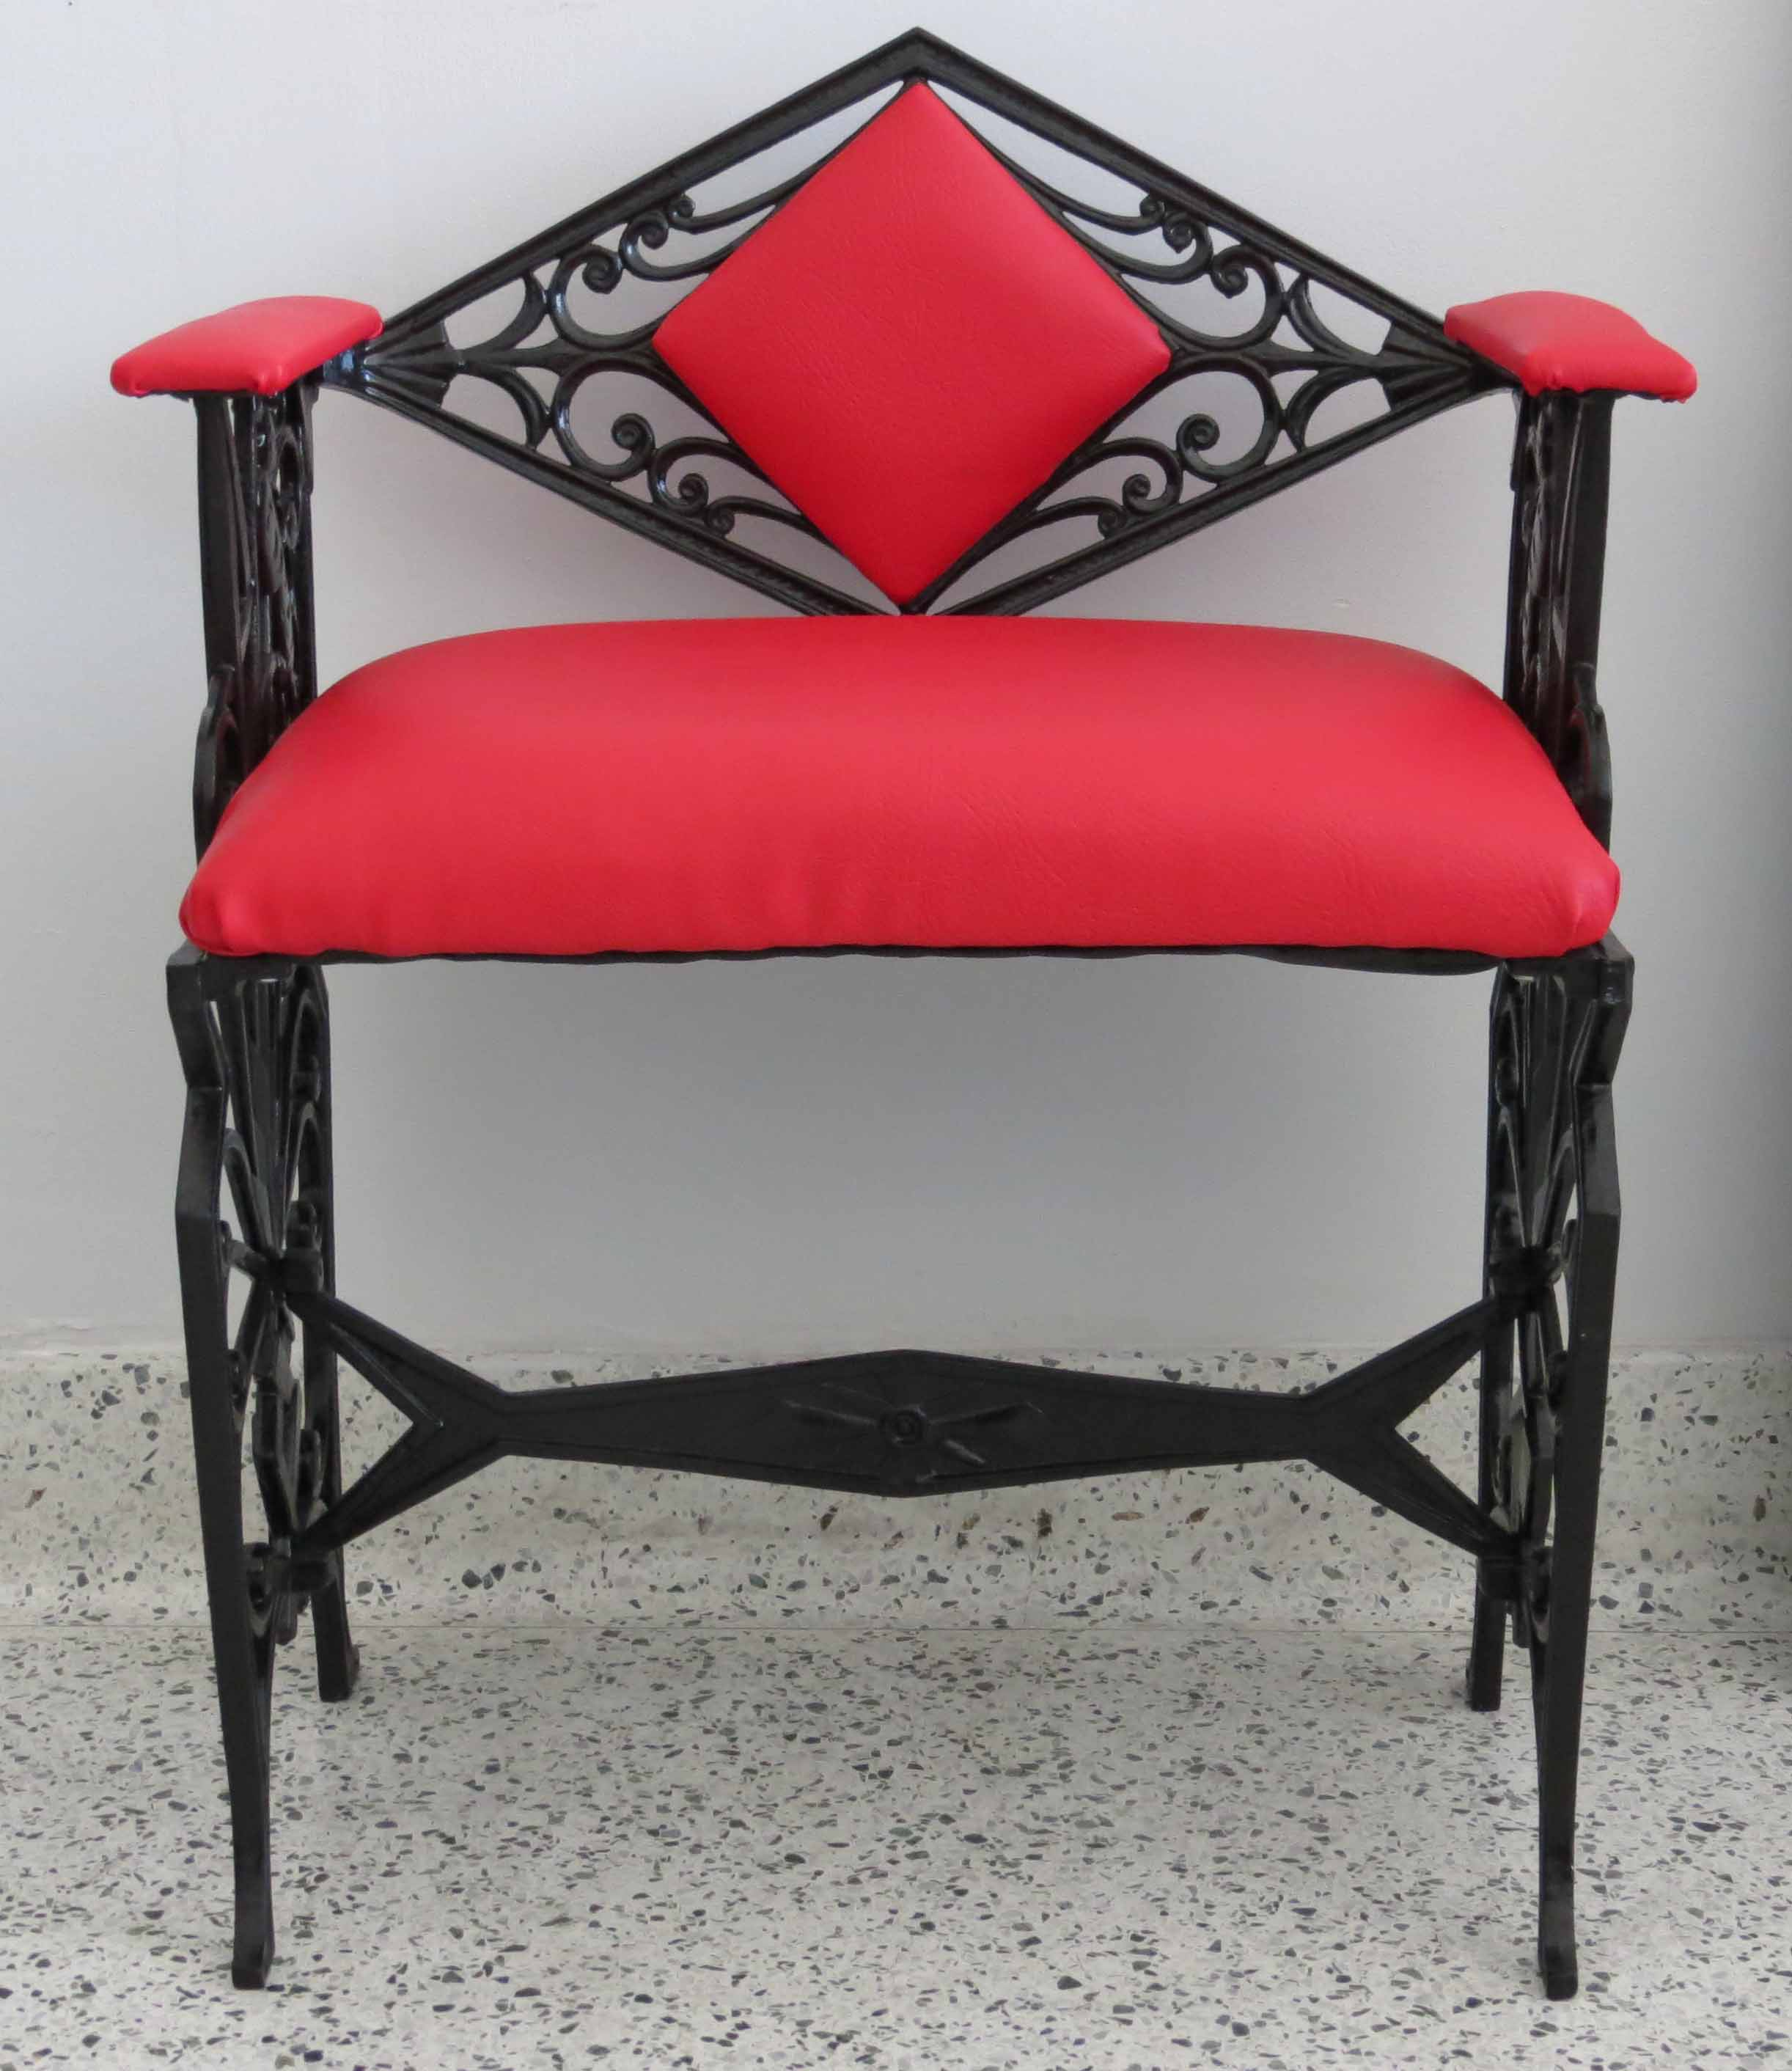 Wrought Iron Table Legs Sydney Home Design Inspirations : art deco diamond chair 2 from kiliu.com size 2444 x 2824 jpeg 281kB